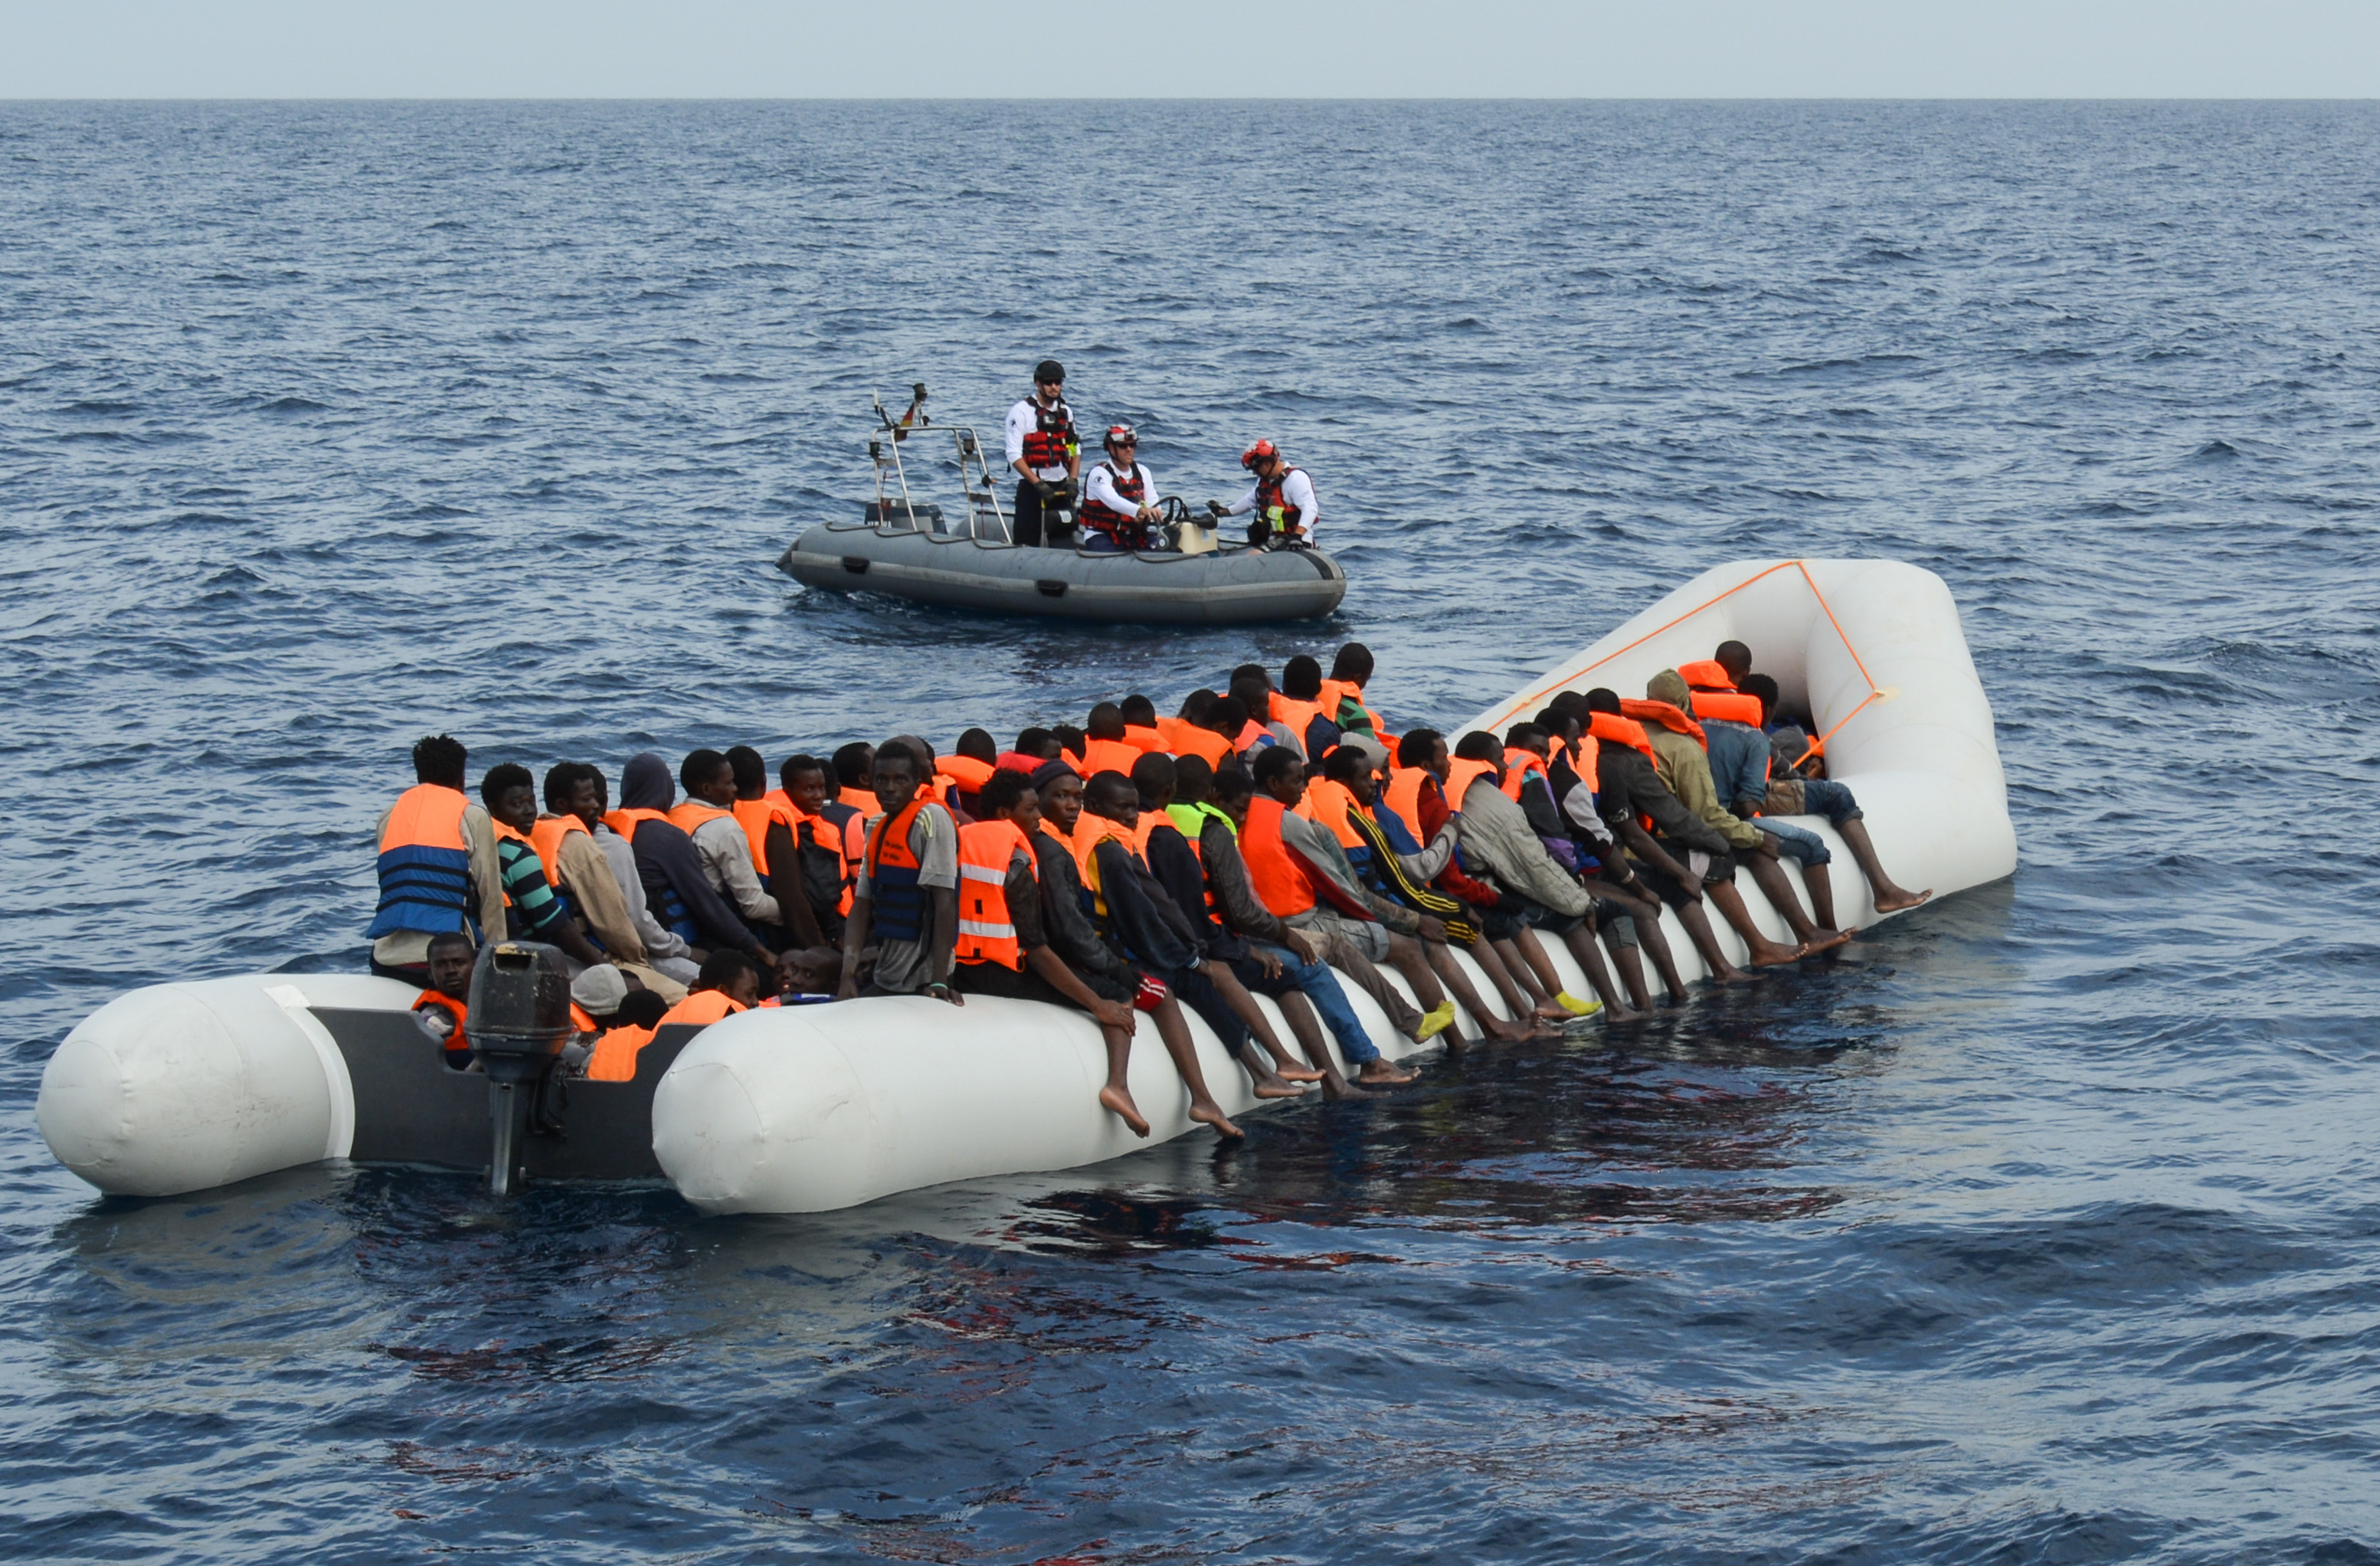 Photo: Refugees on crowded boat